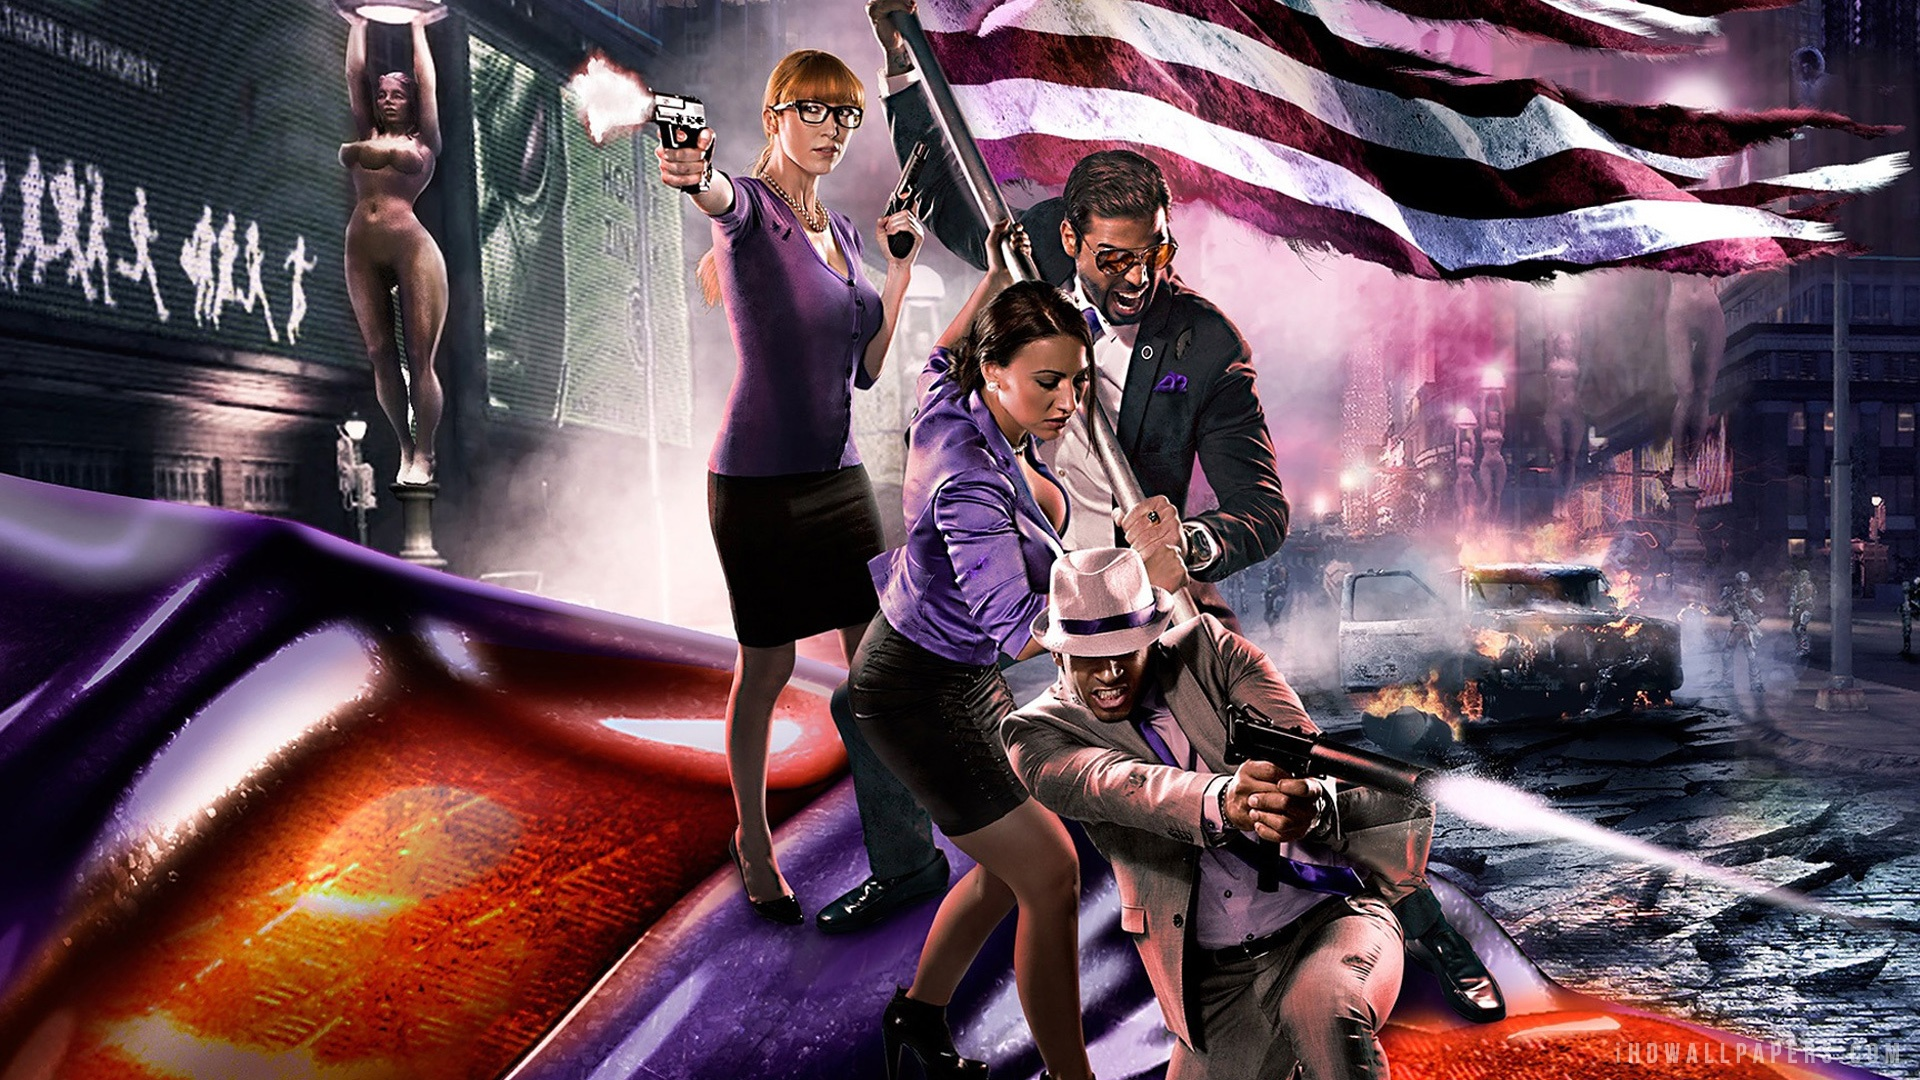 Saints Row 4 Wallpapers: Saints Row 3 Wallpaper